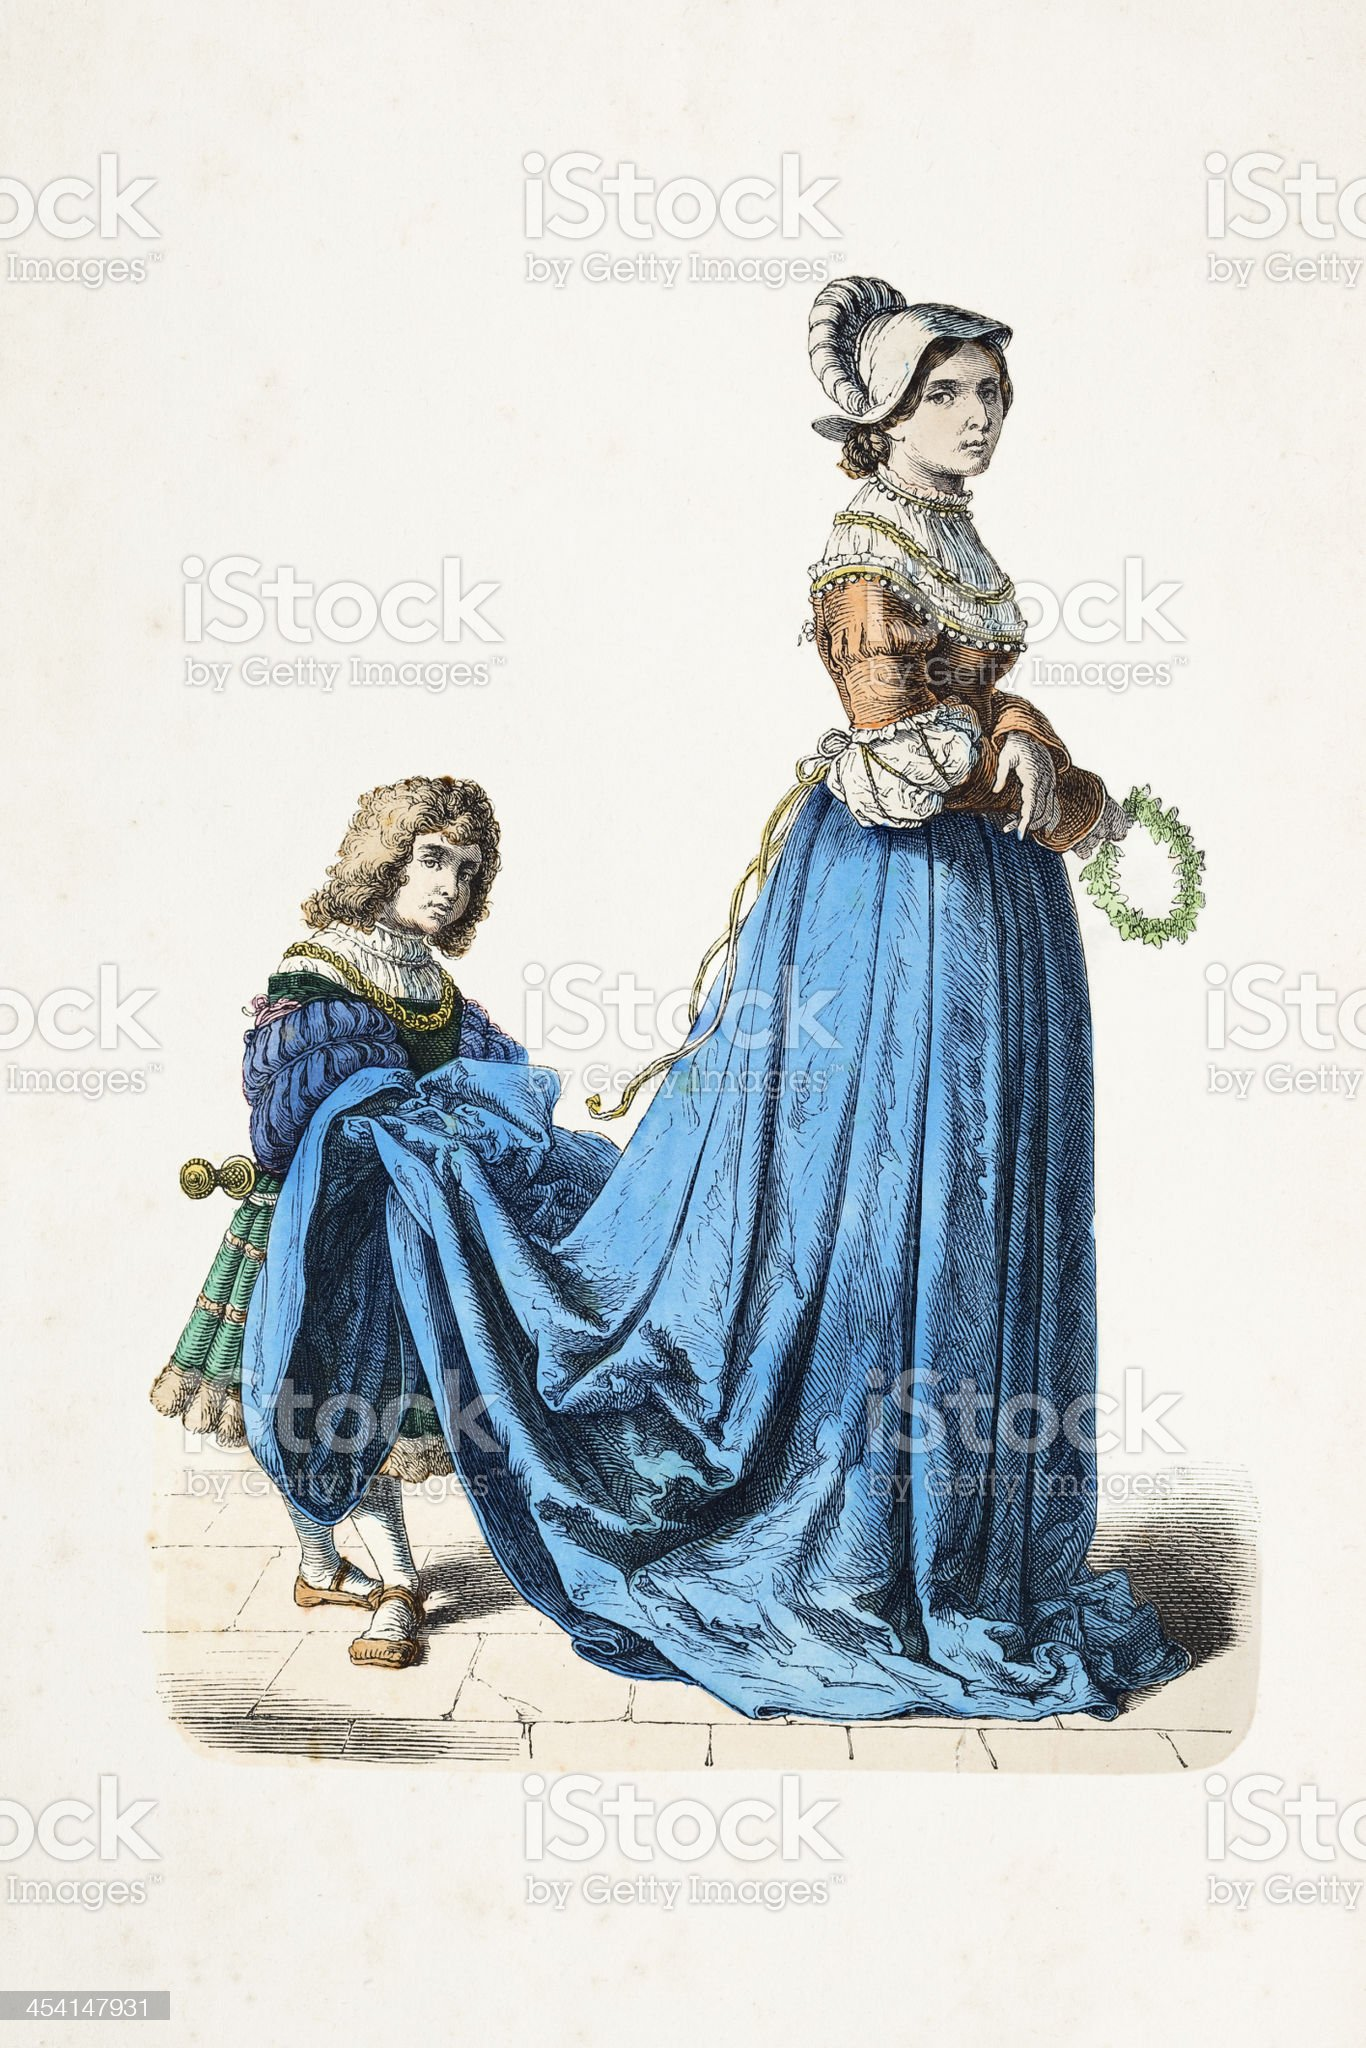 French aristocratic woman with gofer traditional clothing 16th century royalty-free stock vector art